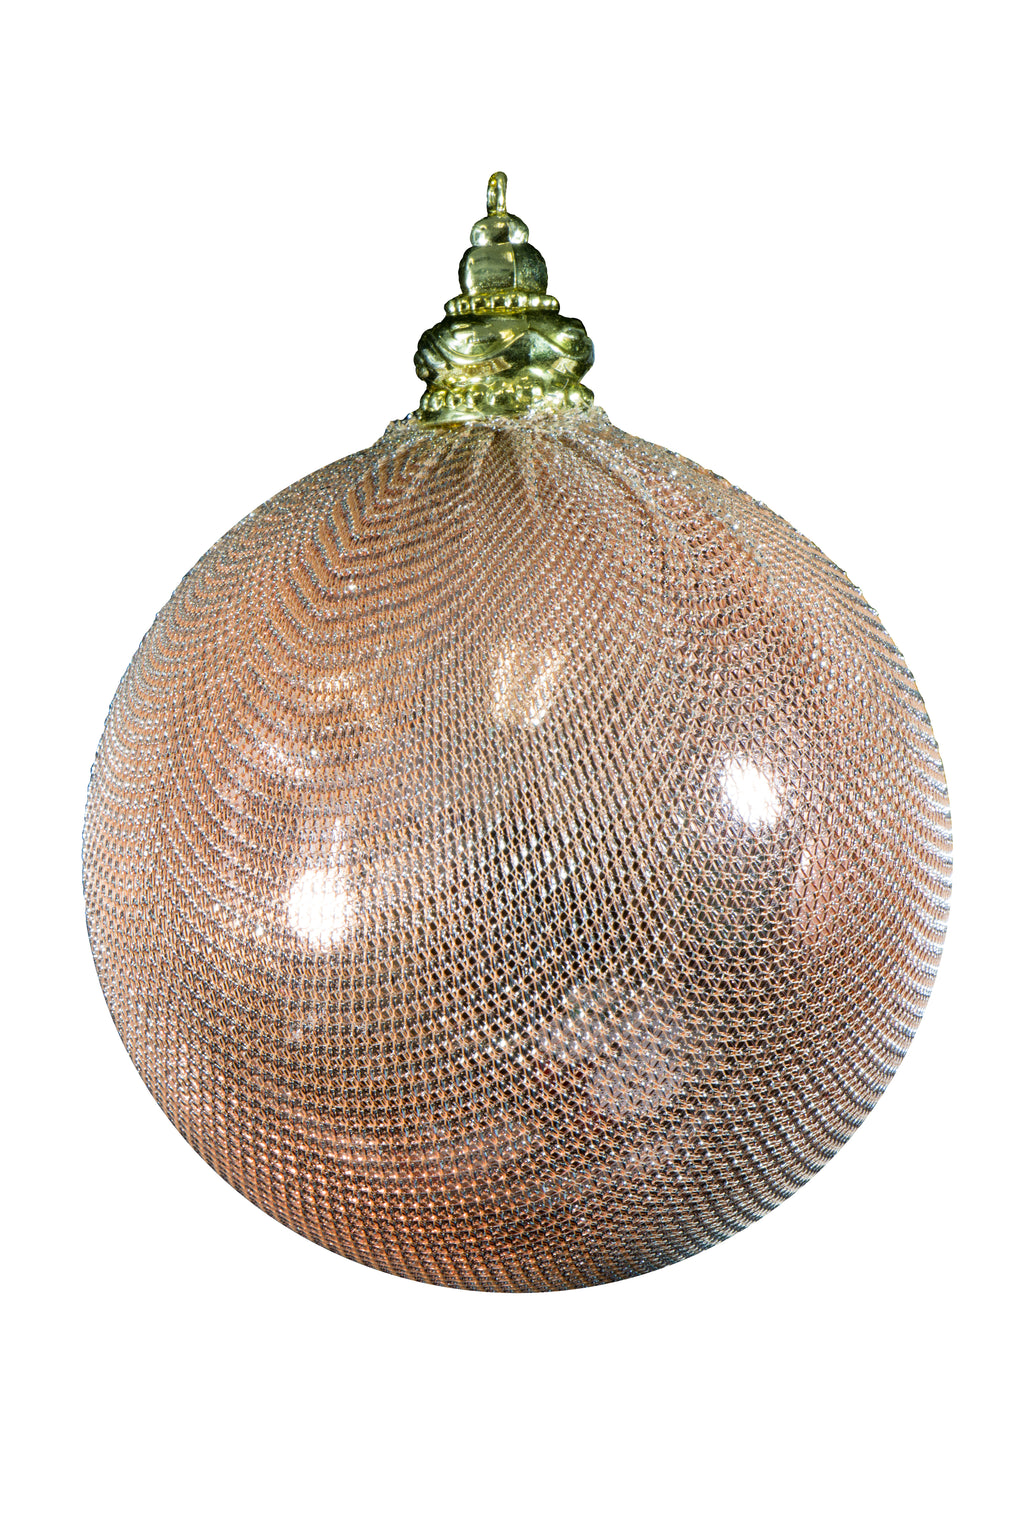 METAL MESH WRAPPED ORNAMENT BALL